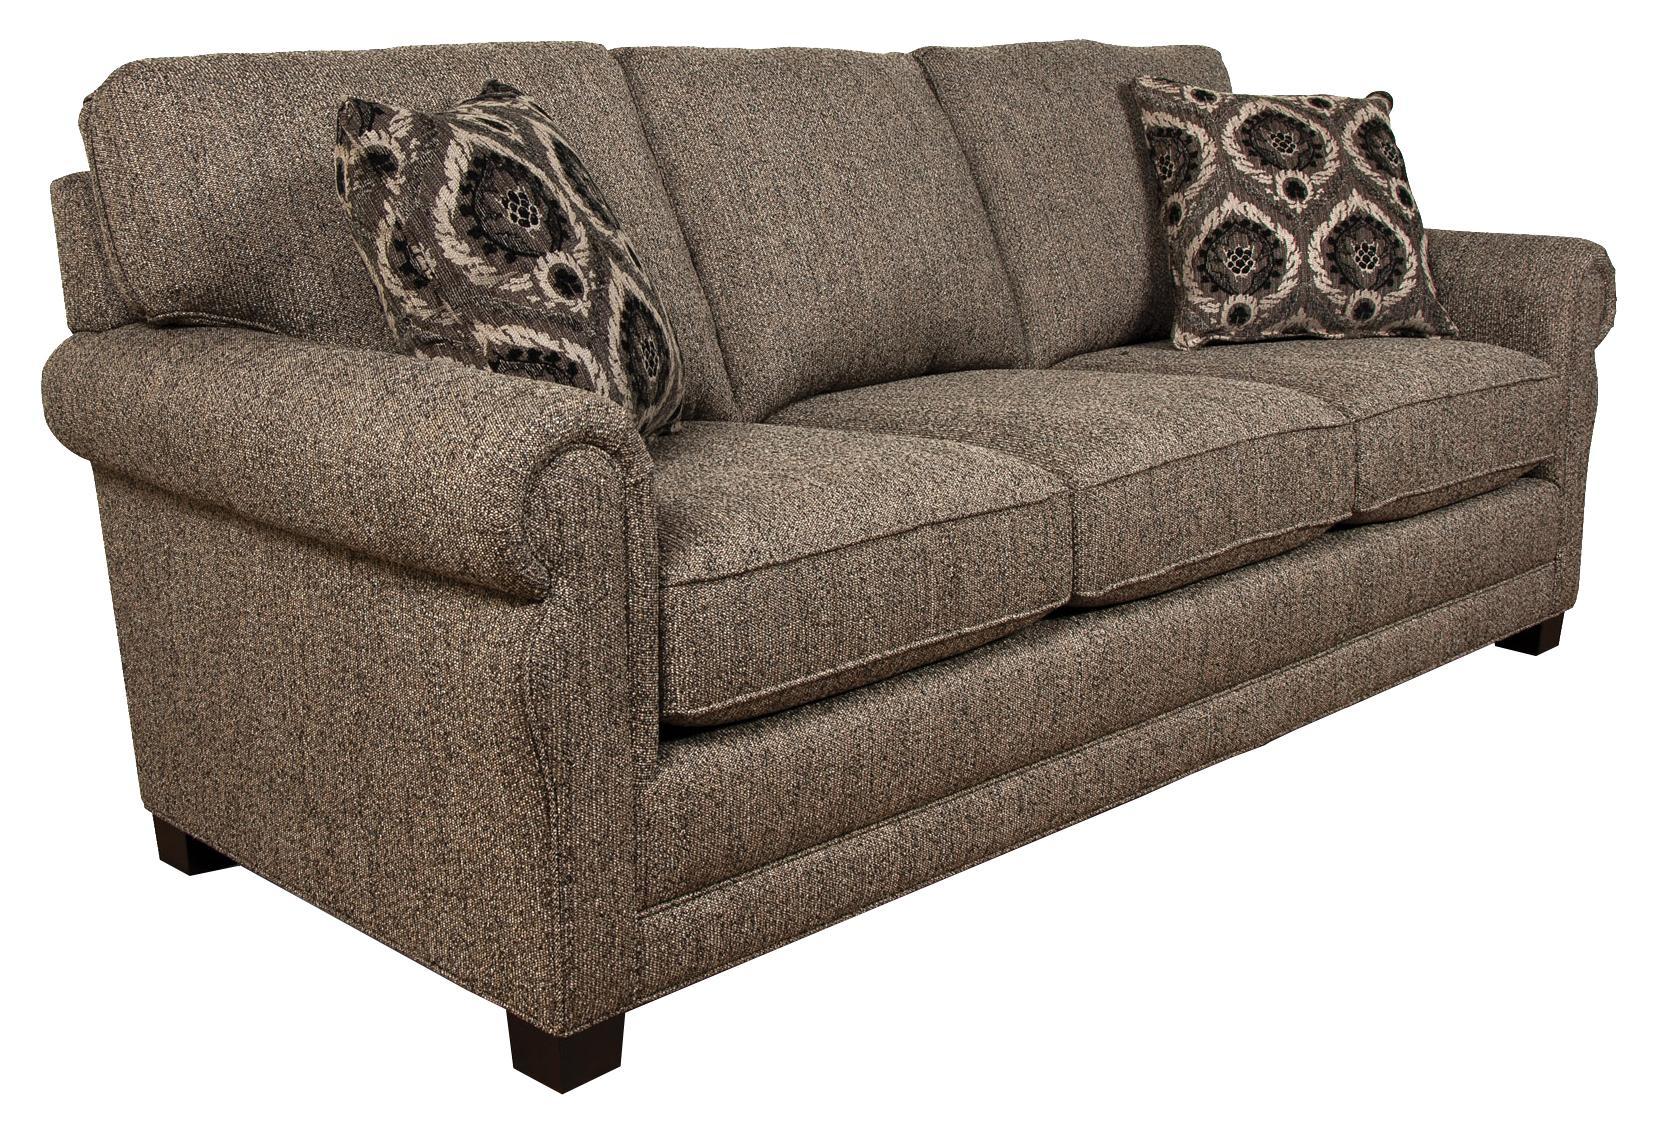 England Green Living Room Sofa With Traditional Style